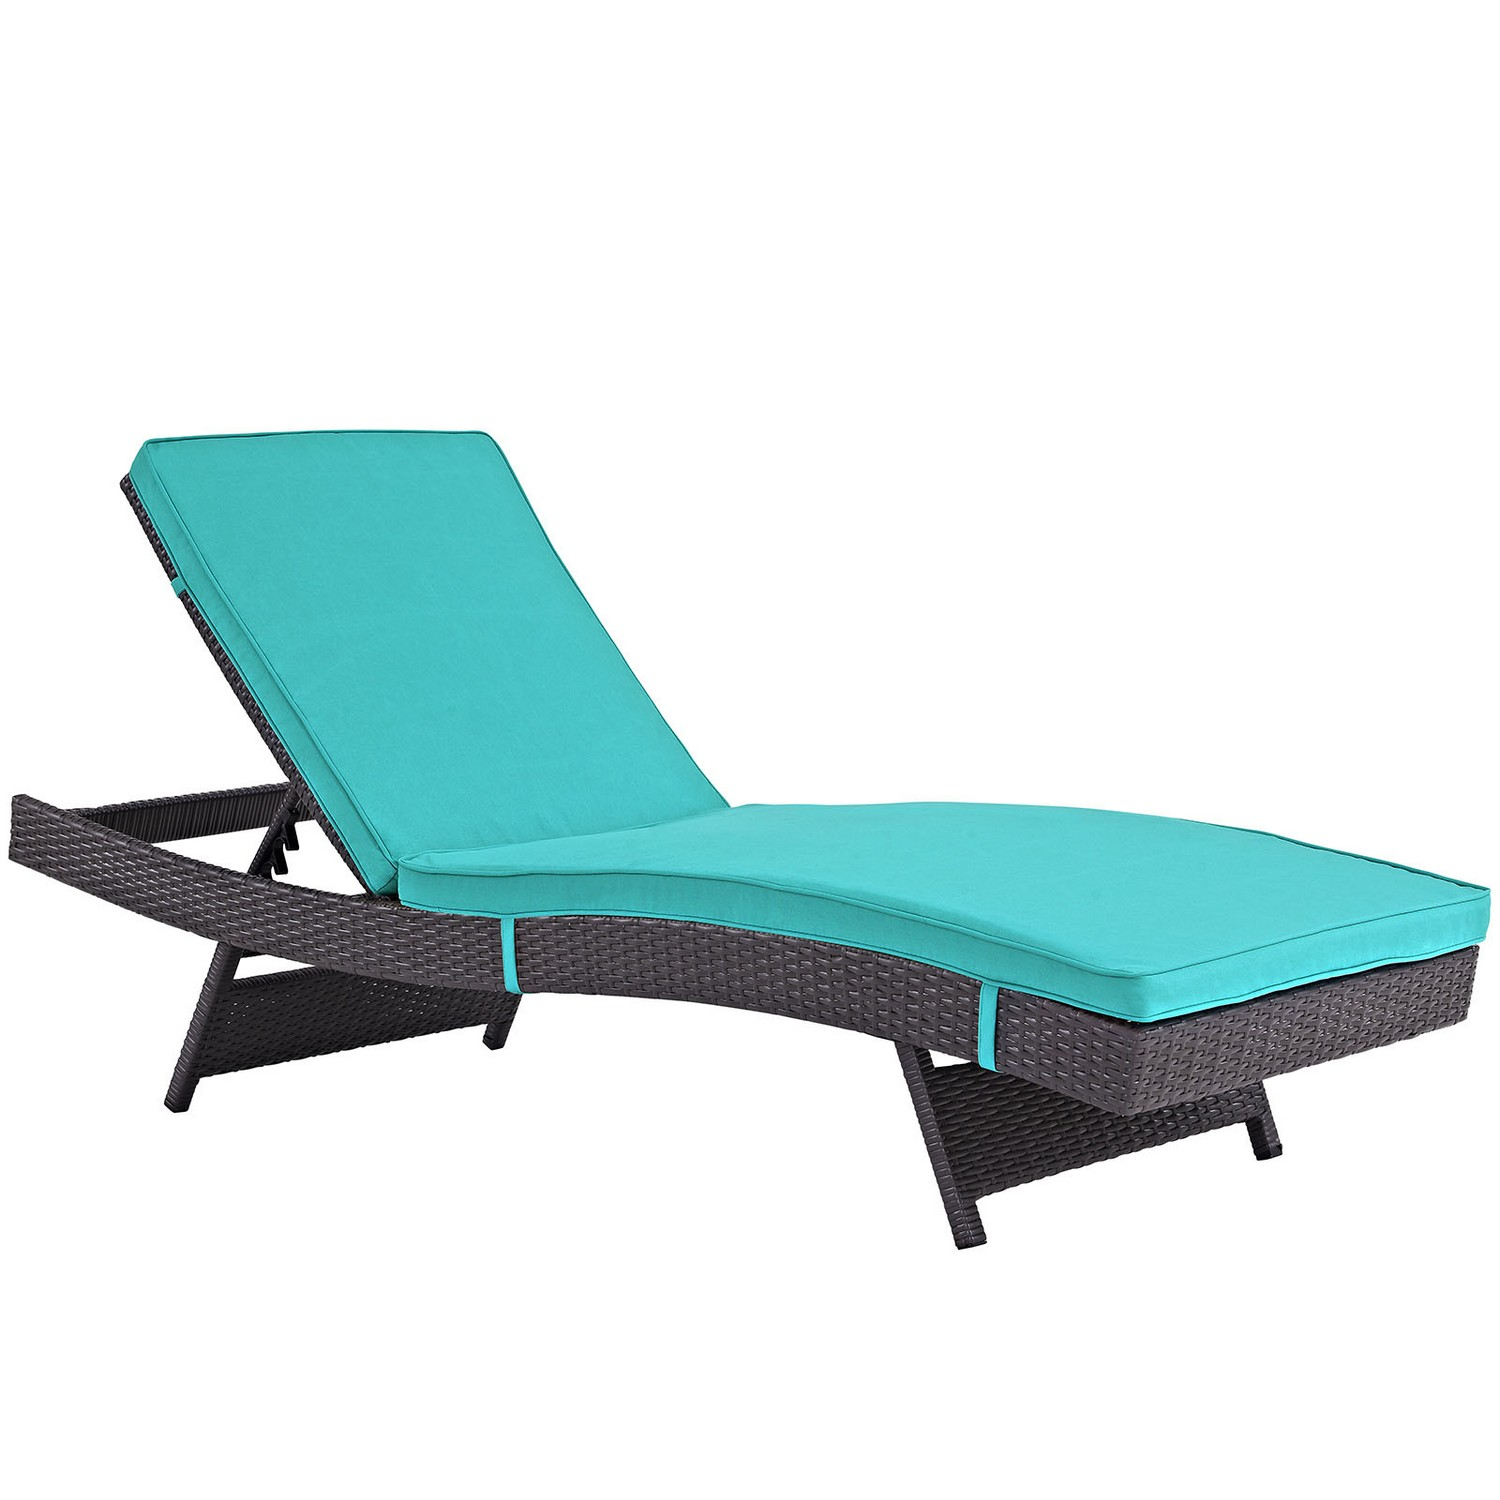 Modway Convene Outdoor Patio Chaise - Espresso Turquoise